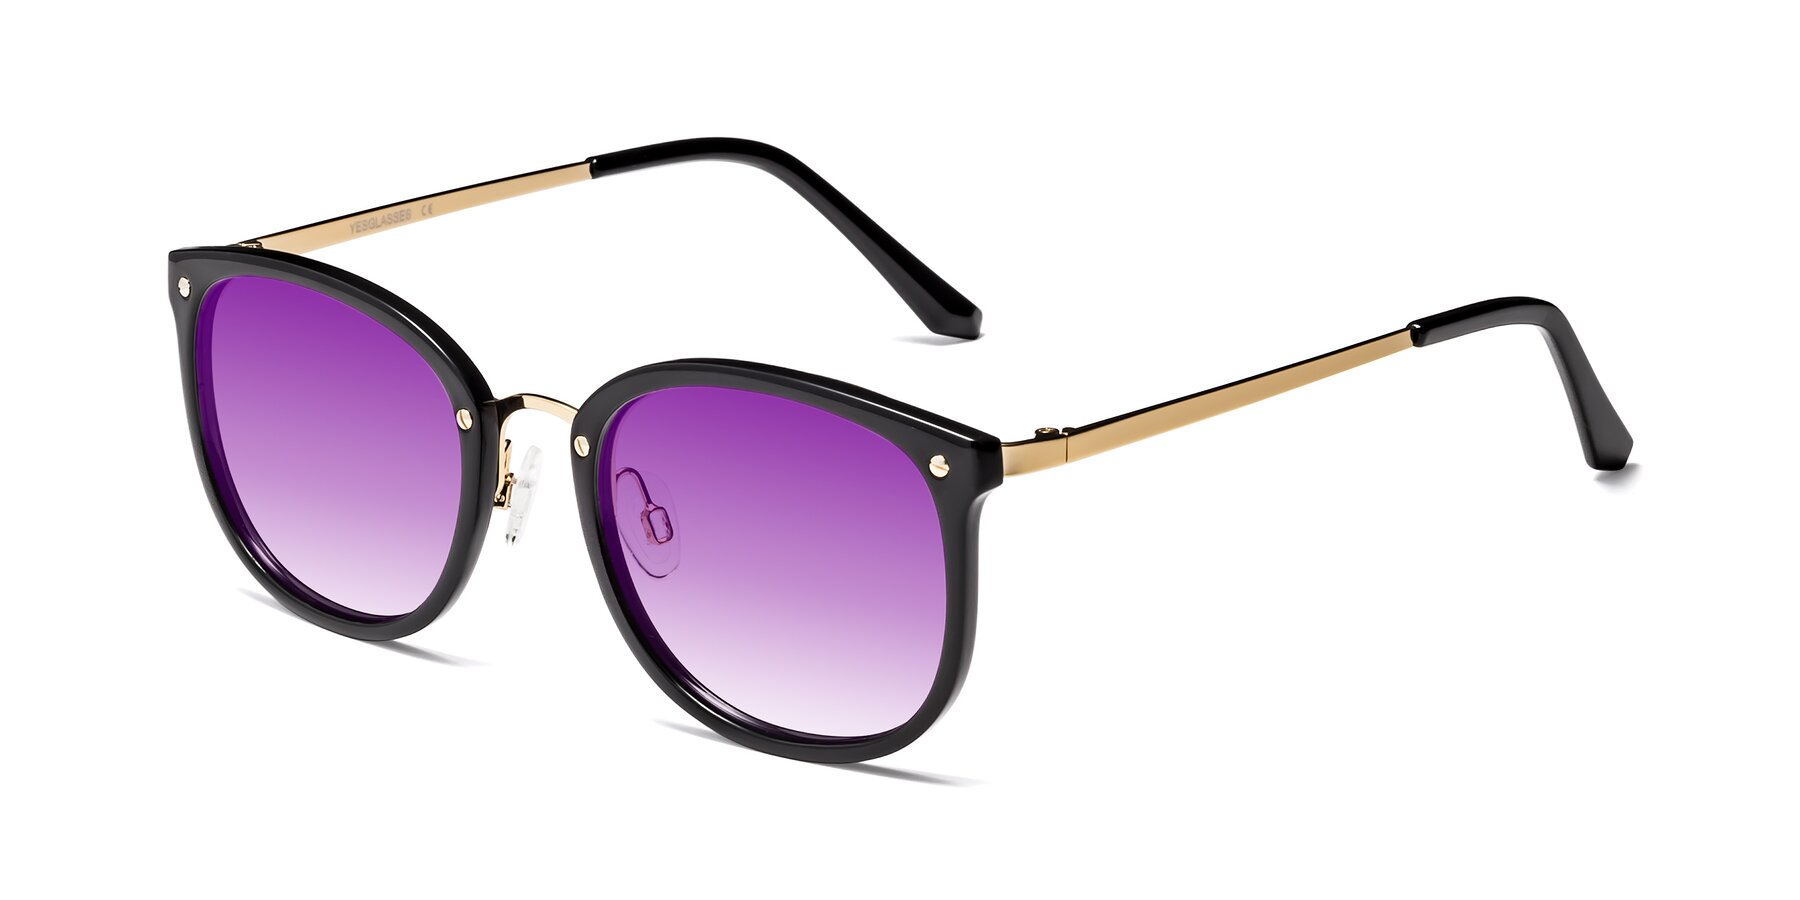 Angle of Timeless in Black-Gold with Purple Gradient Lenses